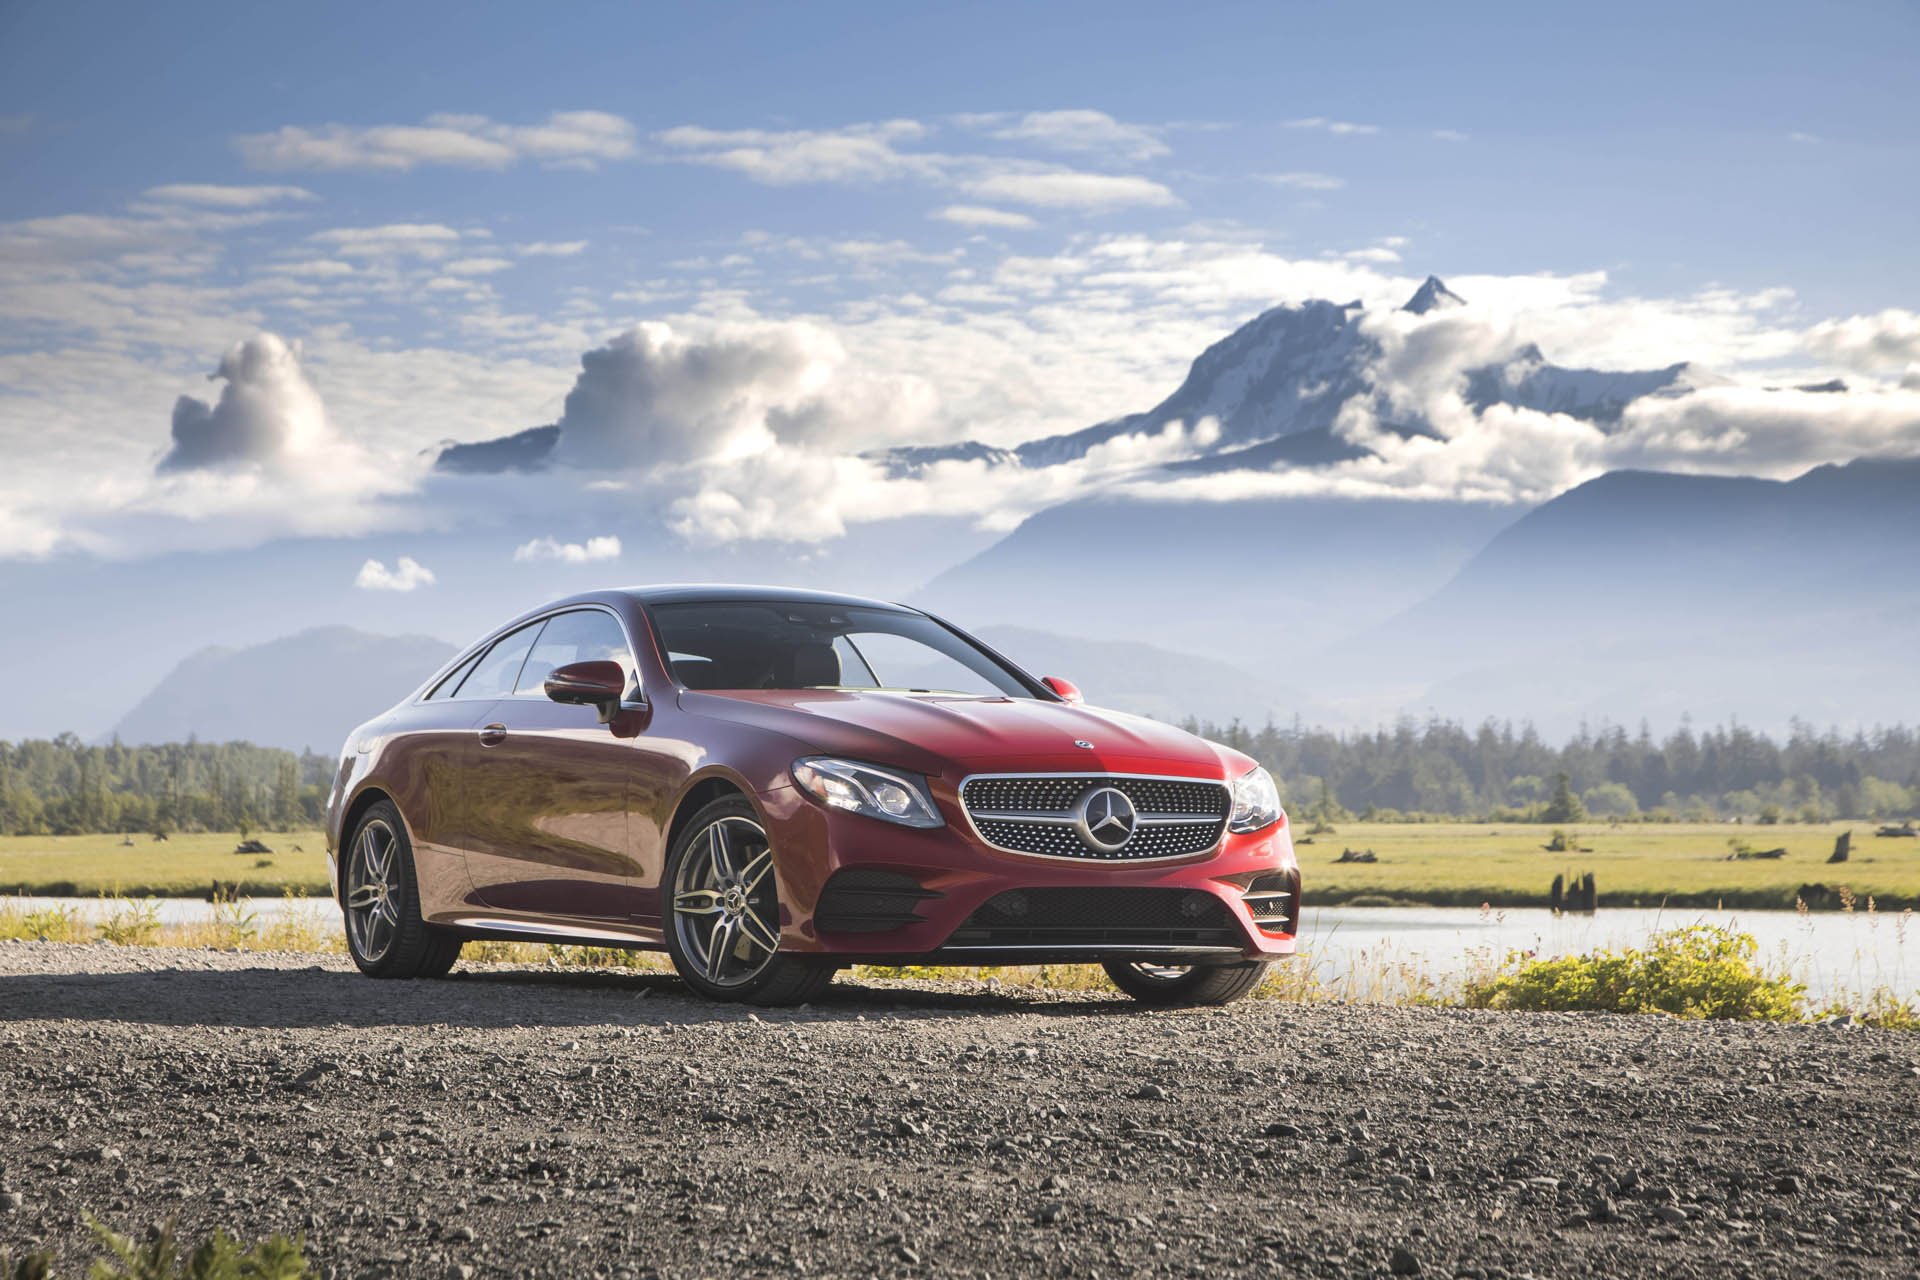 2018 mercedes benz e class coupe first drive review a grand touring value. Black Bedroom Furniture Sets. Home Design Ideas